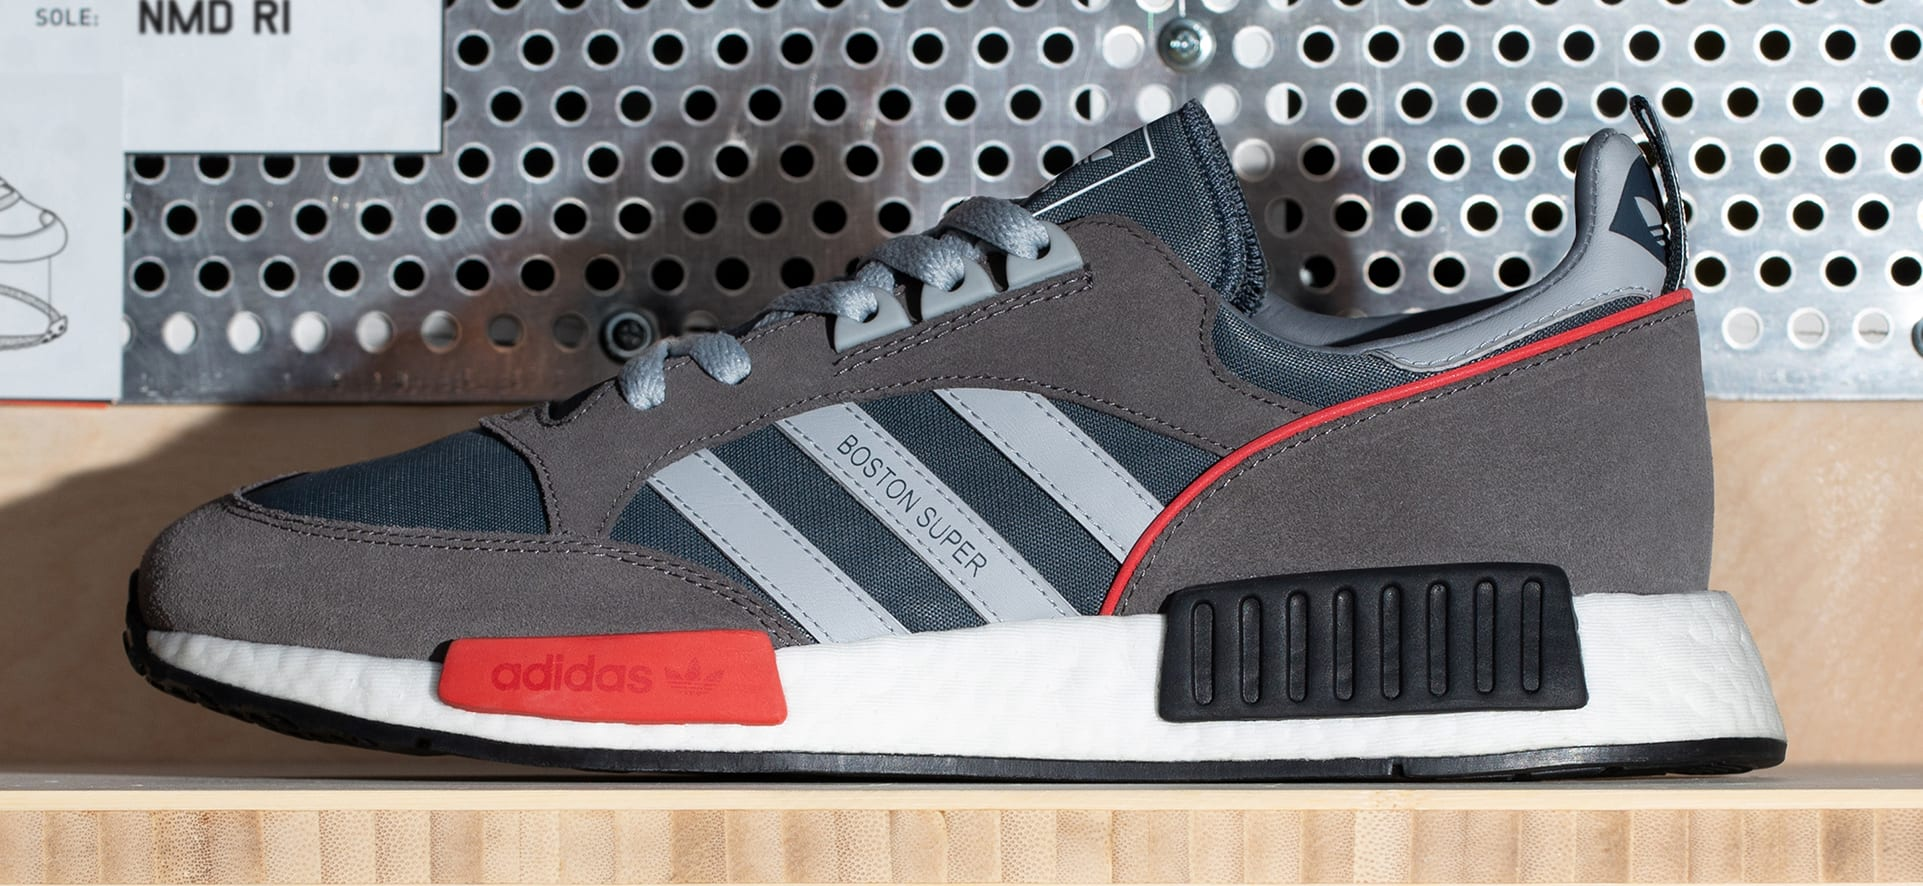 quality design c8c8e 62a05 Adidas 'Never Made' Collection Release Date | Sole Collector